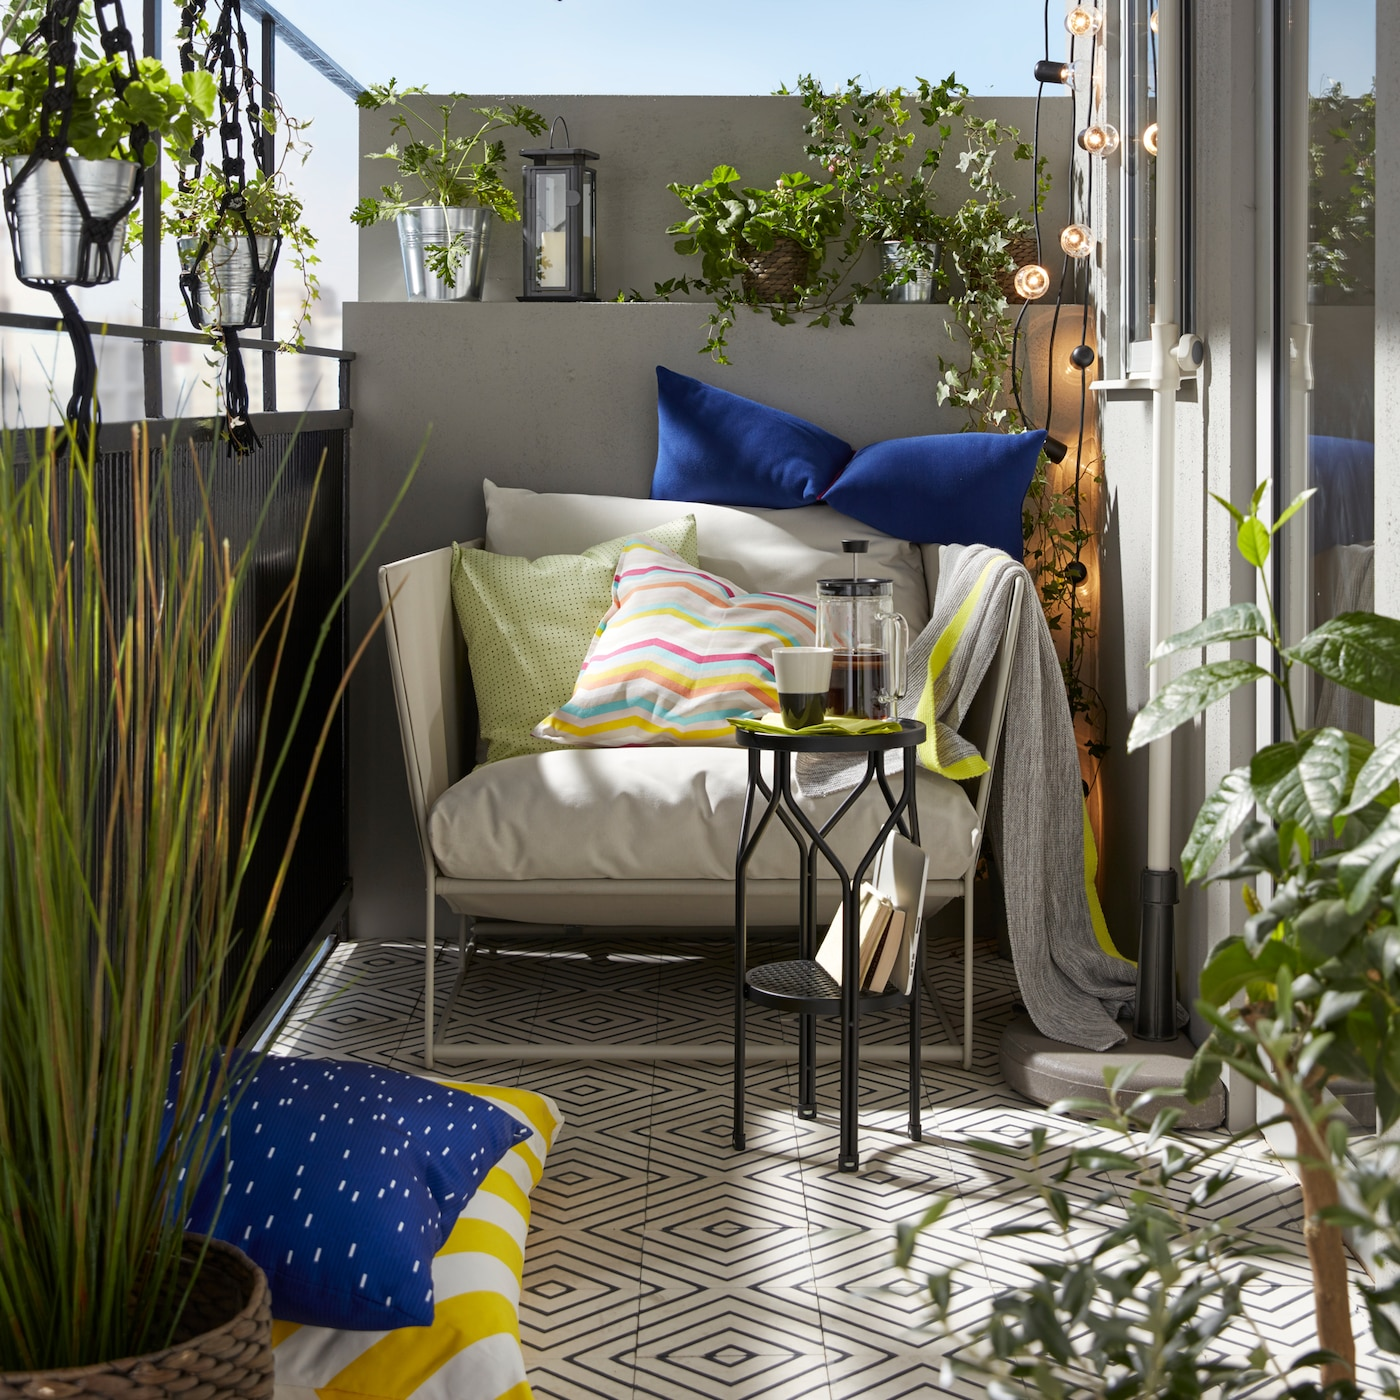 Balcony scene with HAVSTEN in/outdoor sofa and lots of cushions, surrounded by plants.